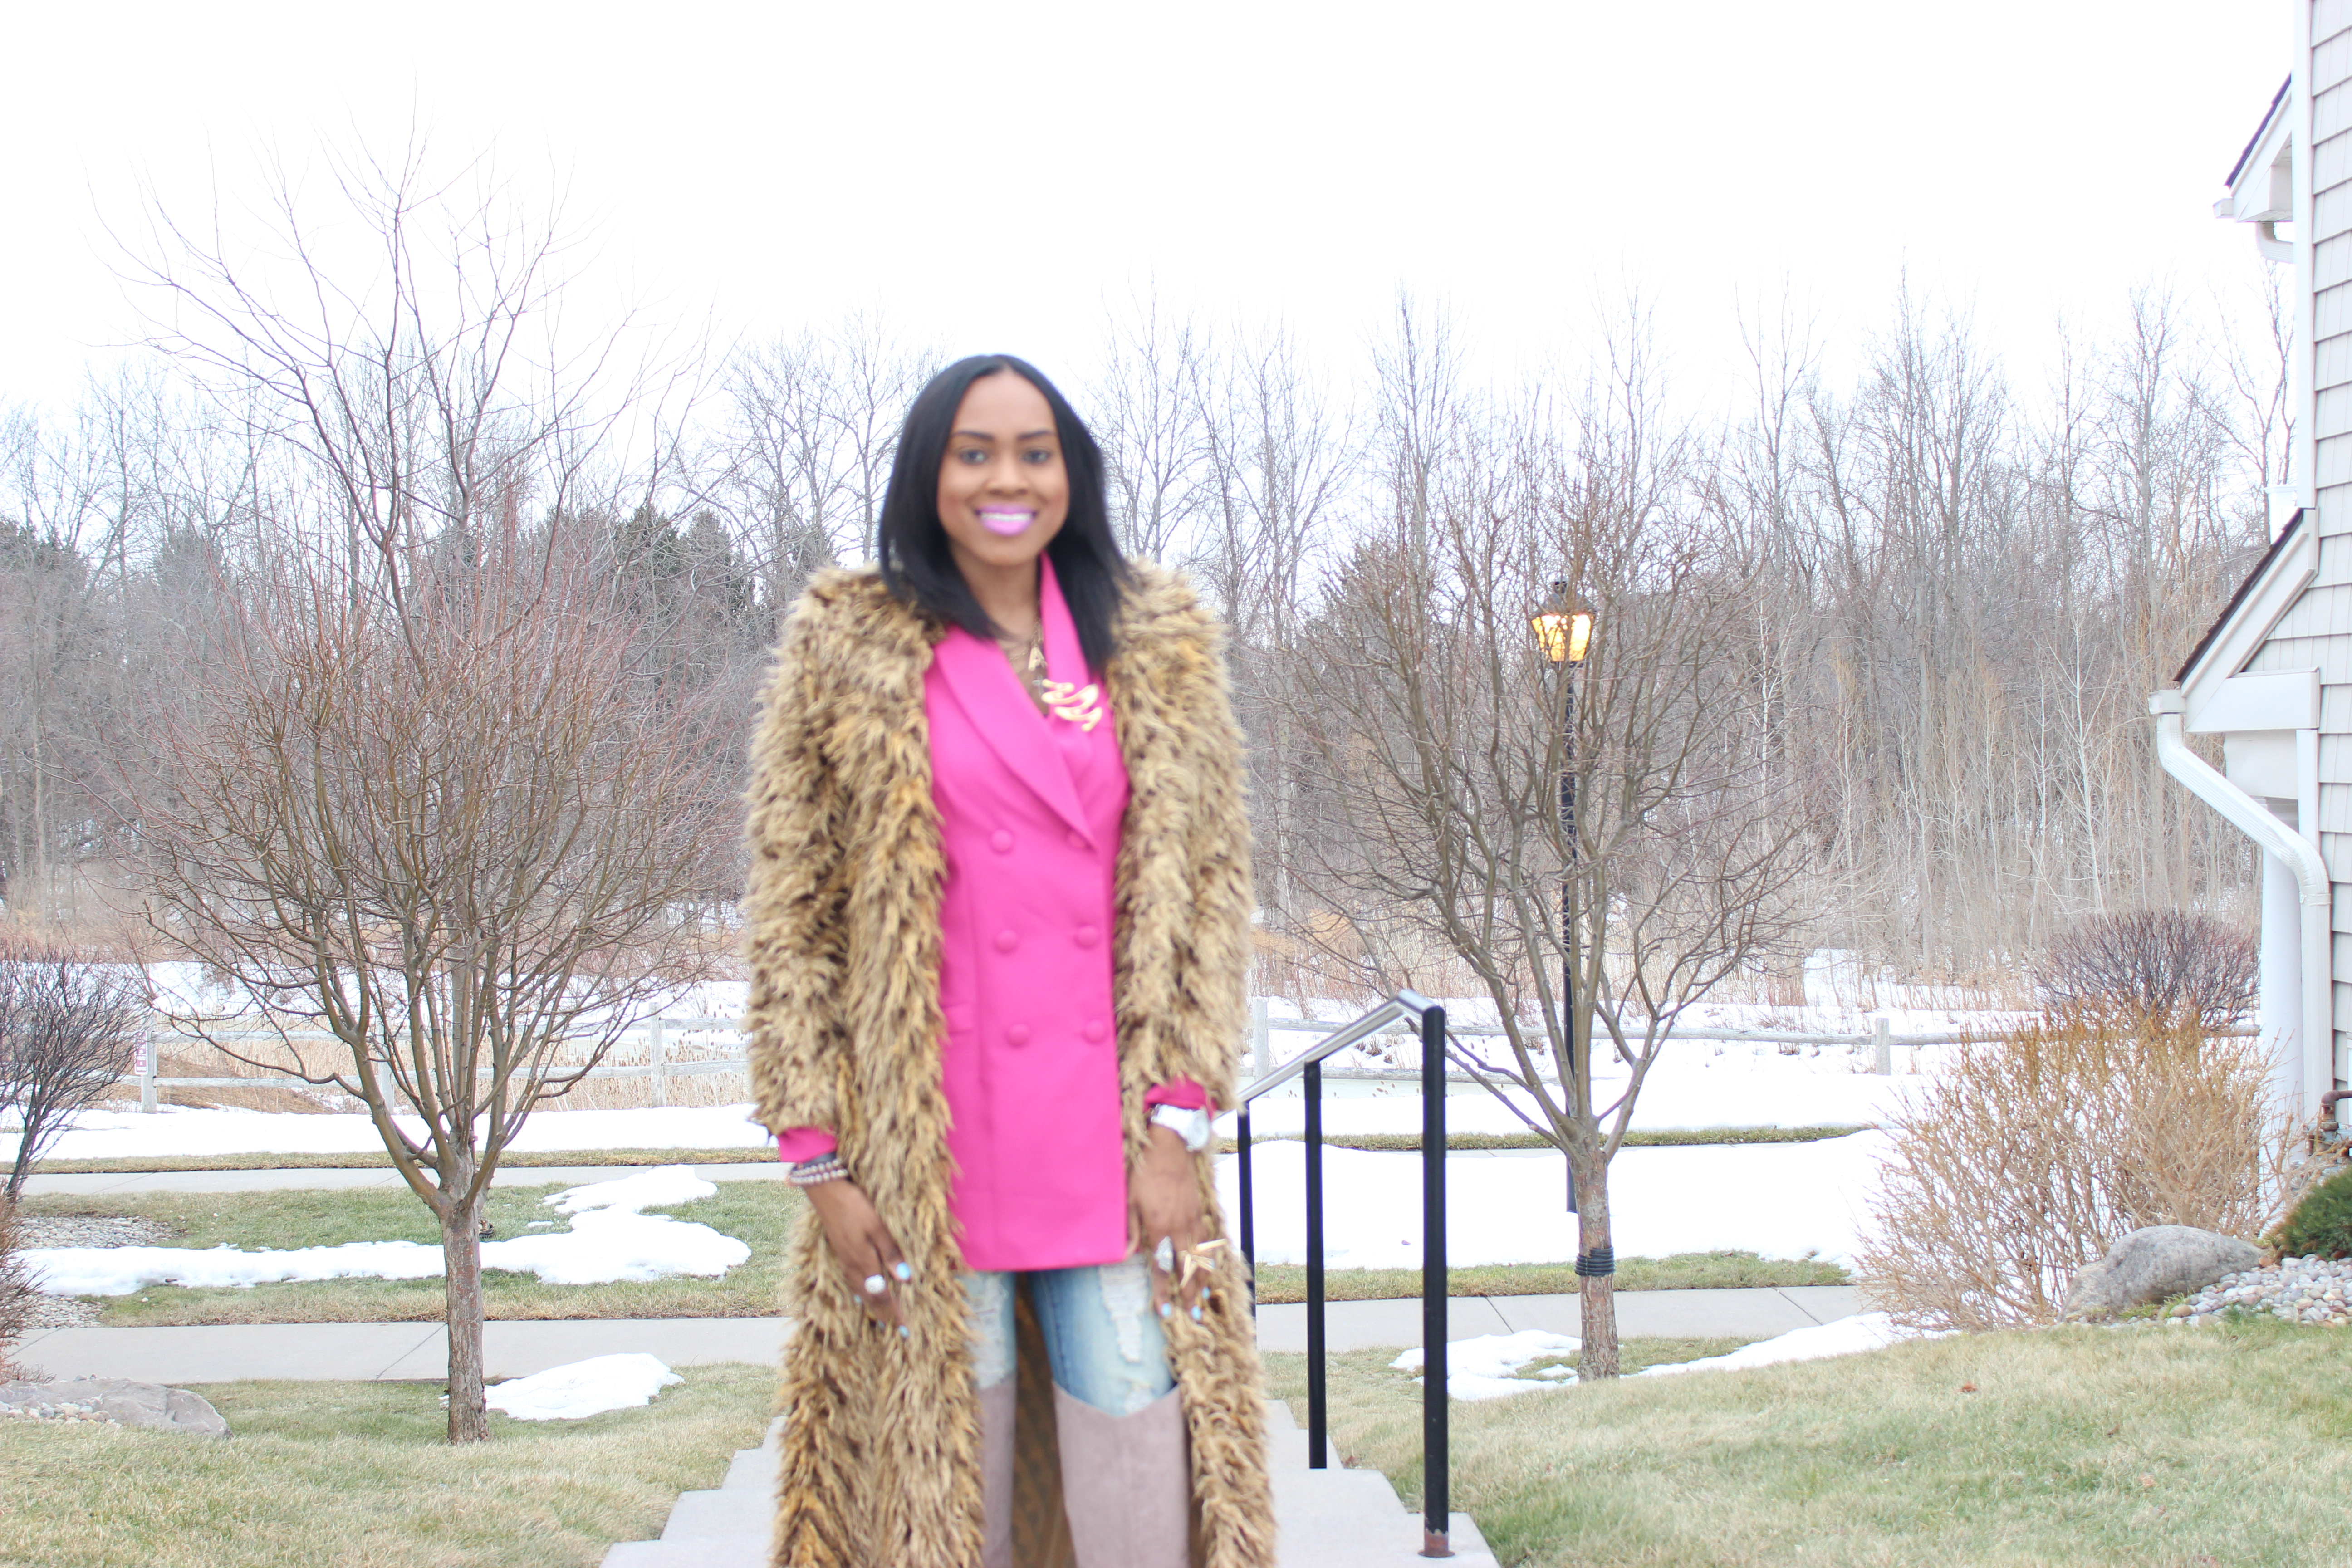 Style-Files-Hot-Pink-Blazer-Distessed-Jeans-Just-fav-over-the-knee-boots-bebe-shaggy-chic-coat-Pretty-Price-13